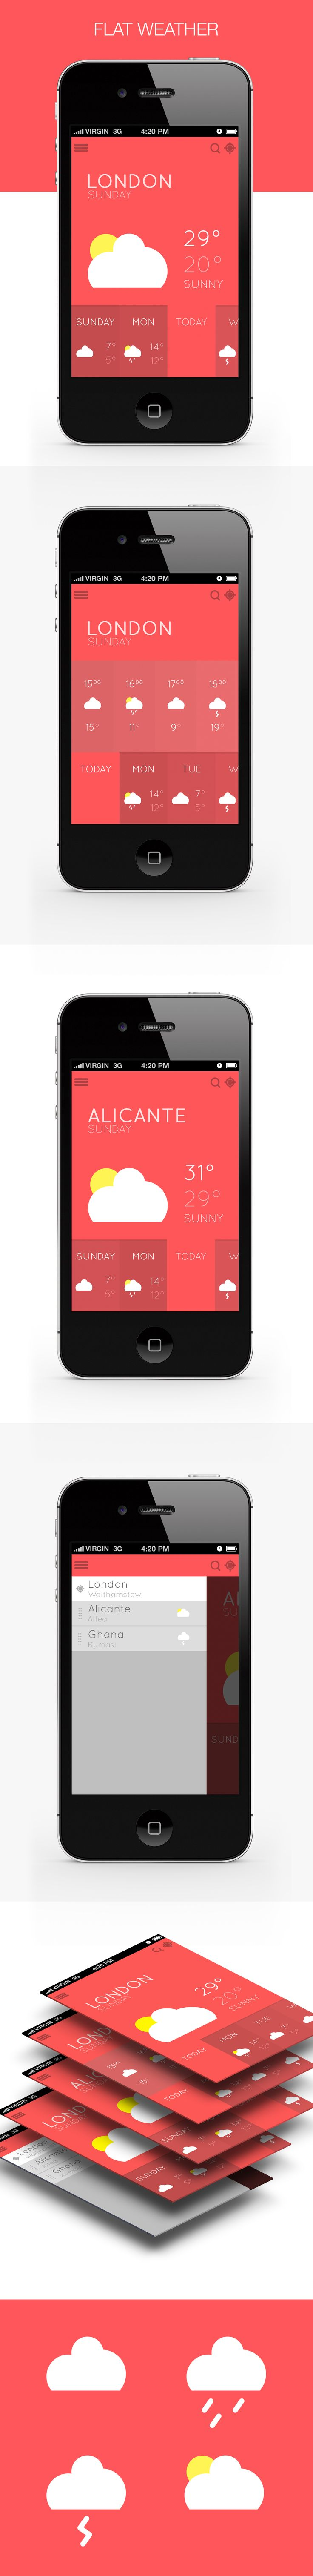 Flat Weather Application